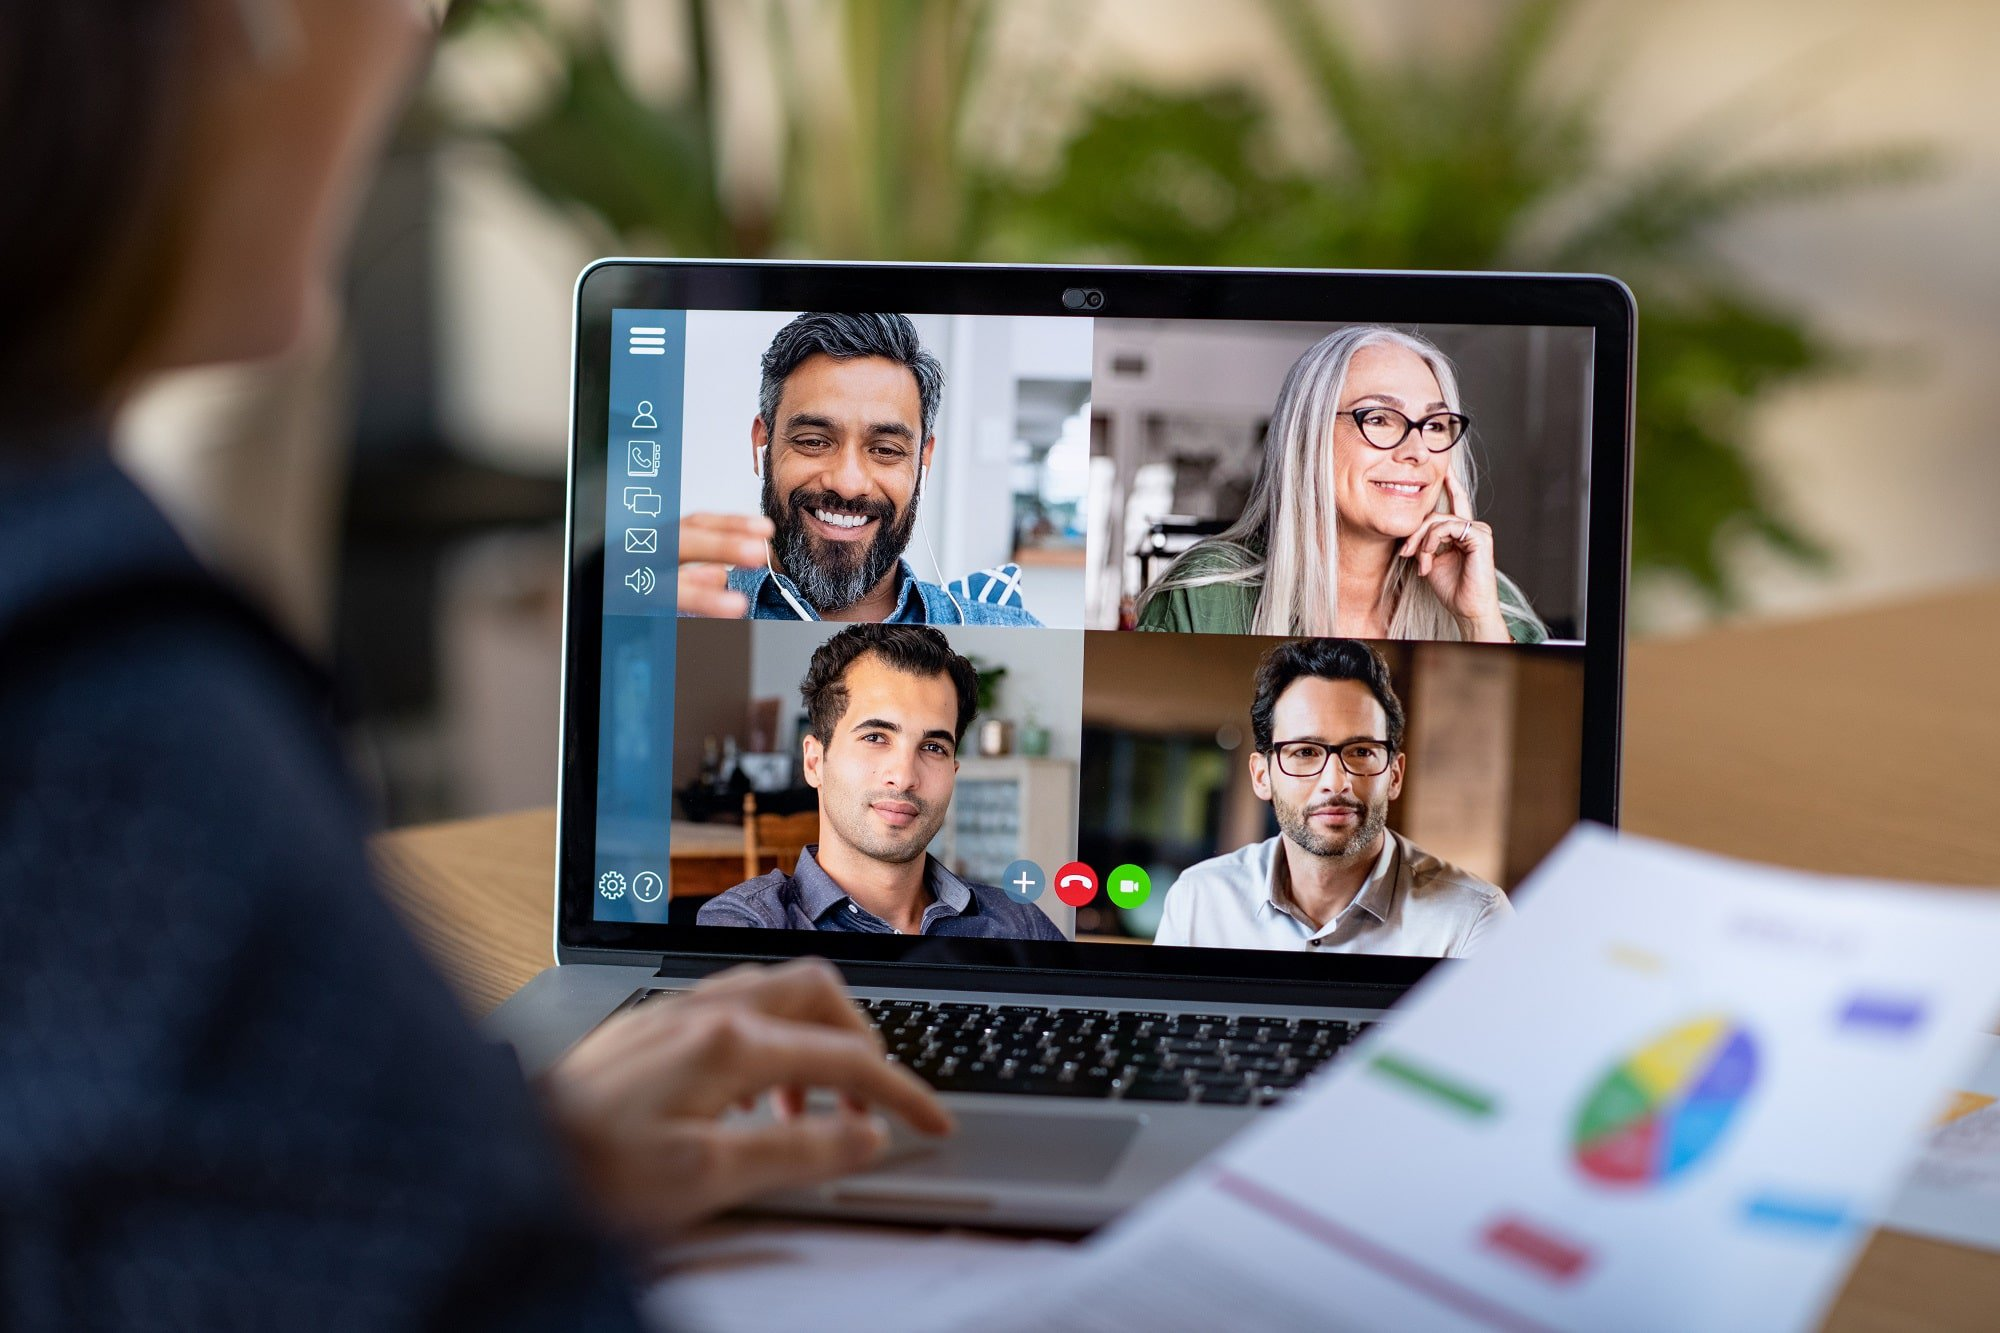 Laptop screen displays a video conference between various multi-ethnic co-workers